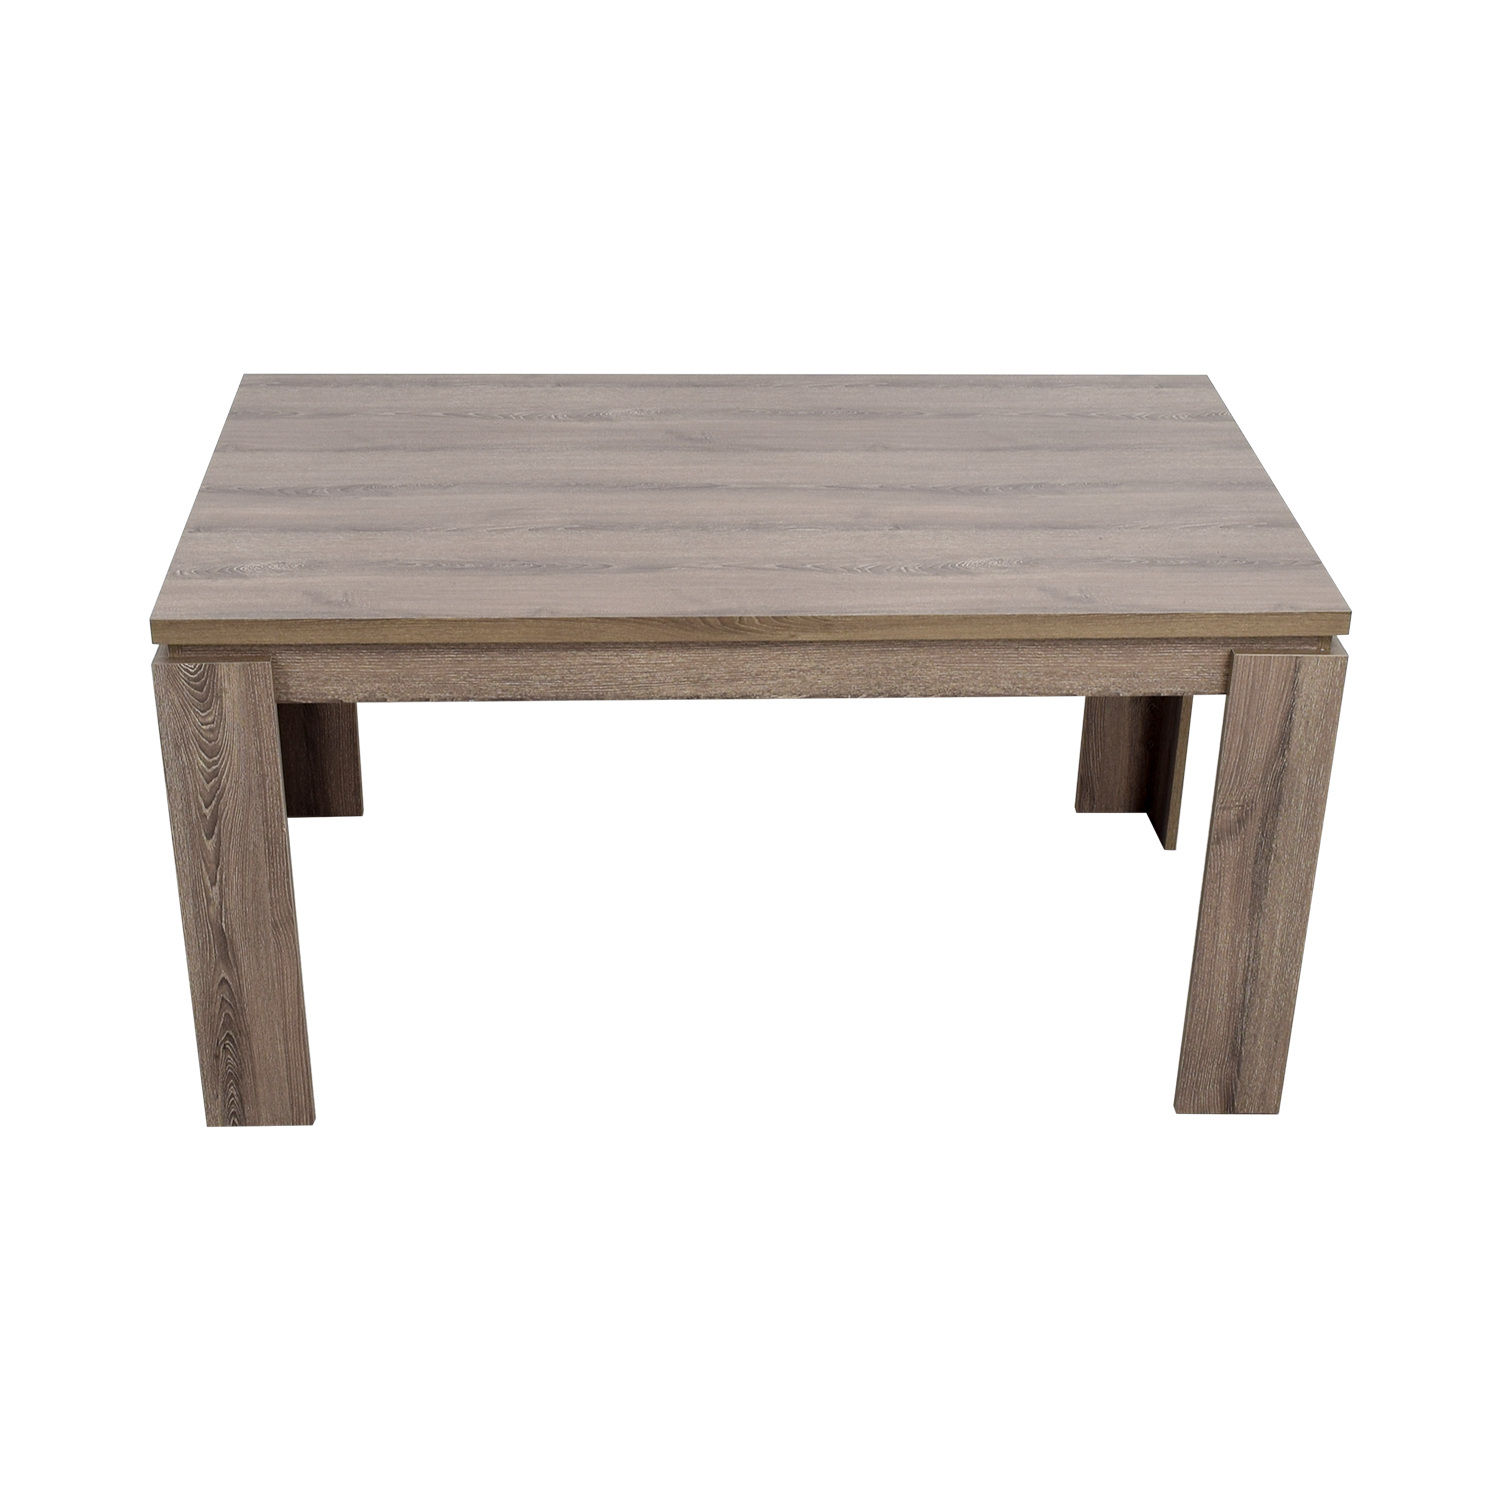 buy WilliamBrugman Rustic Grey Table WilliamBrugman